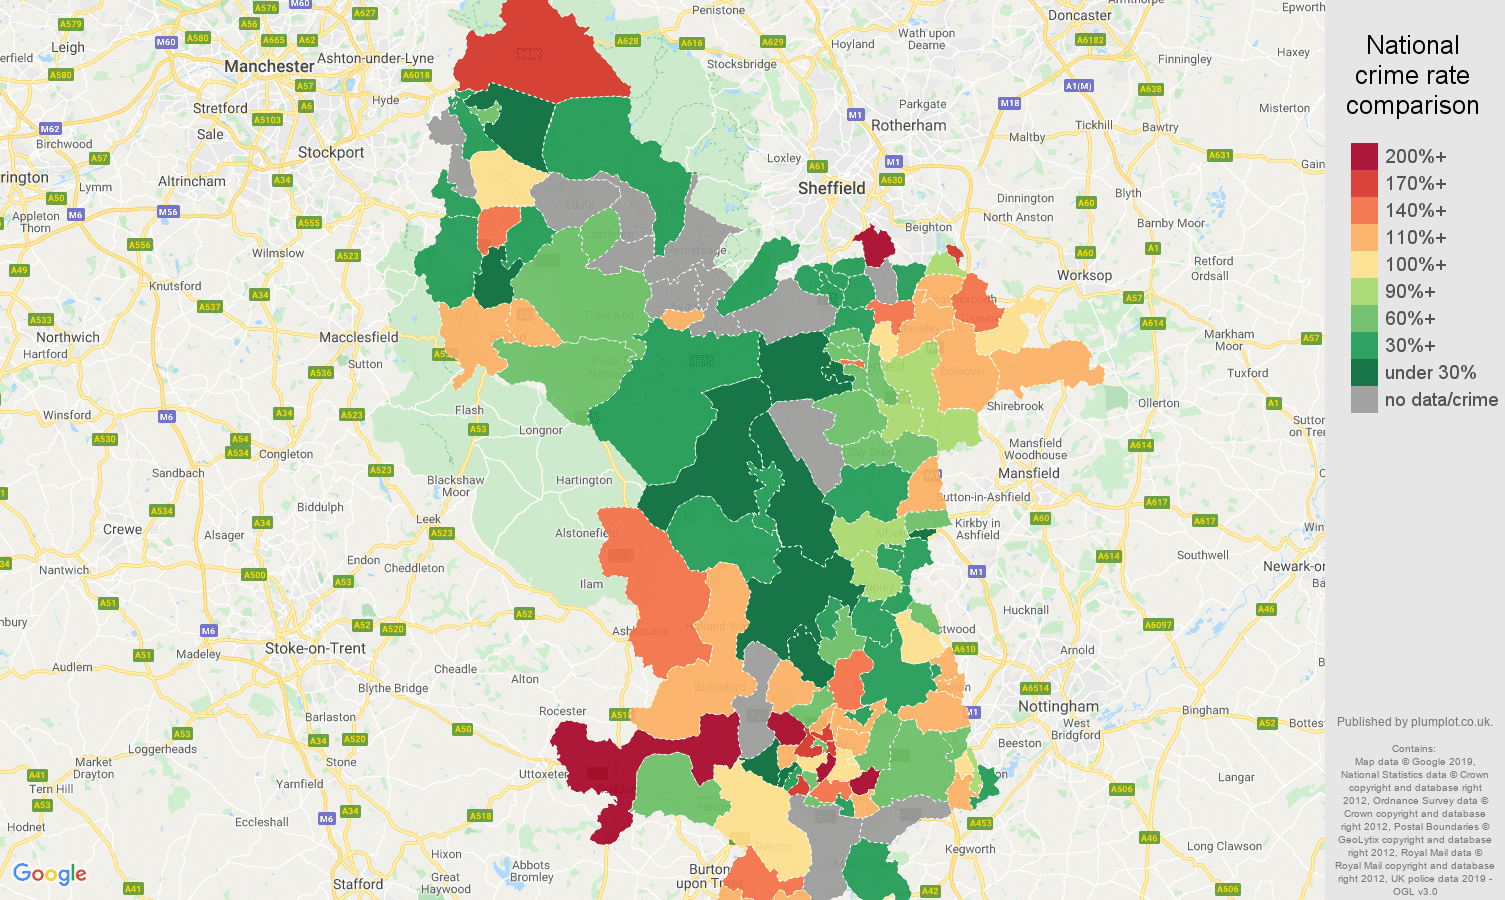 Derbyshire other crime rate comparison map